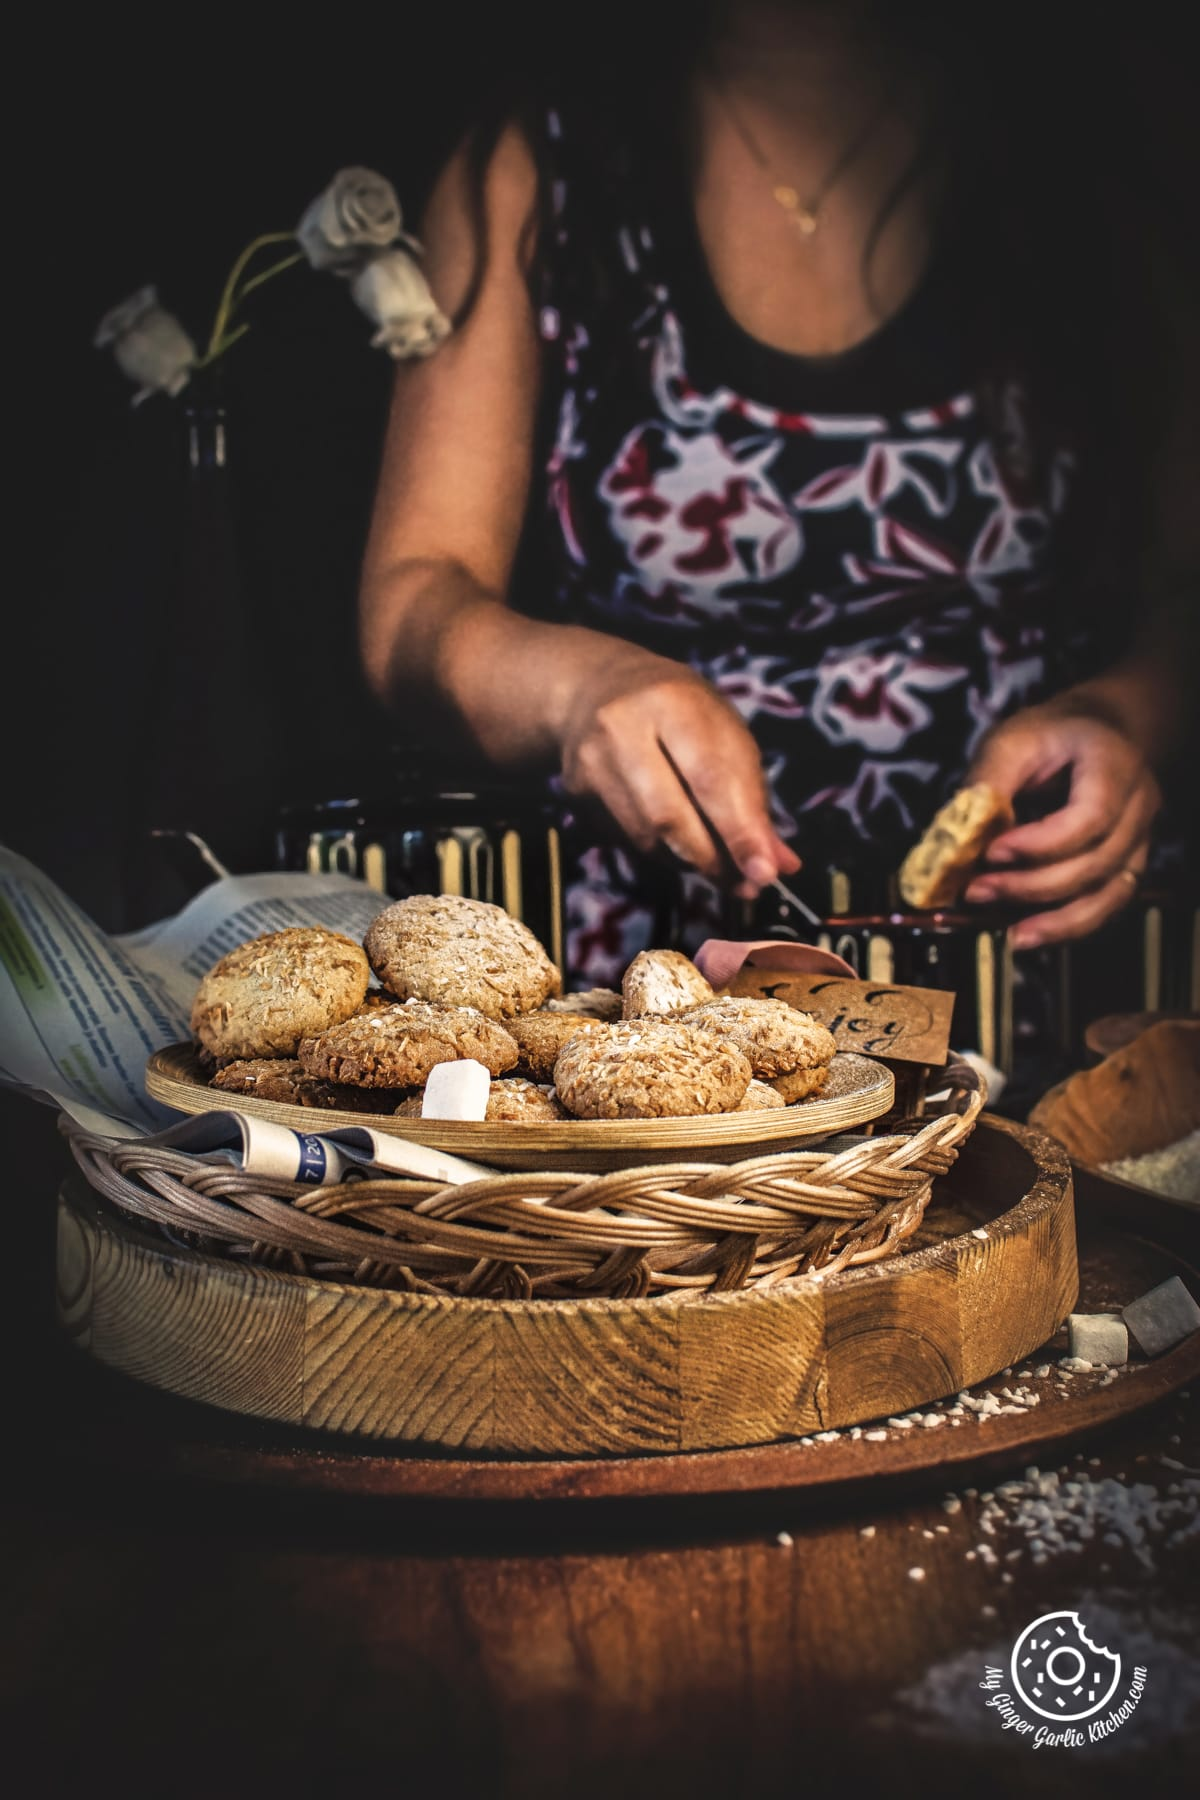 coconut cookies in a wooden plate and a female in the background